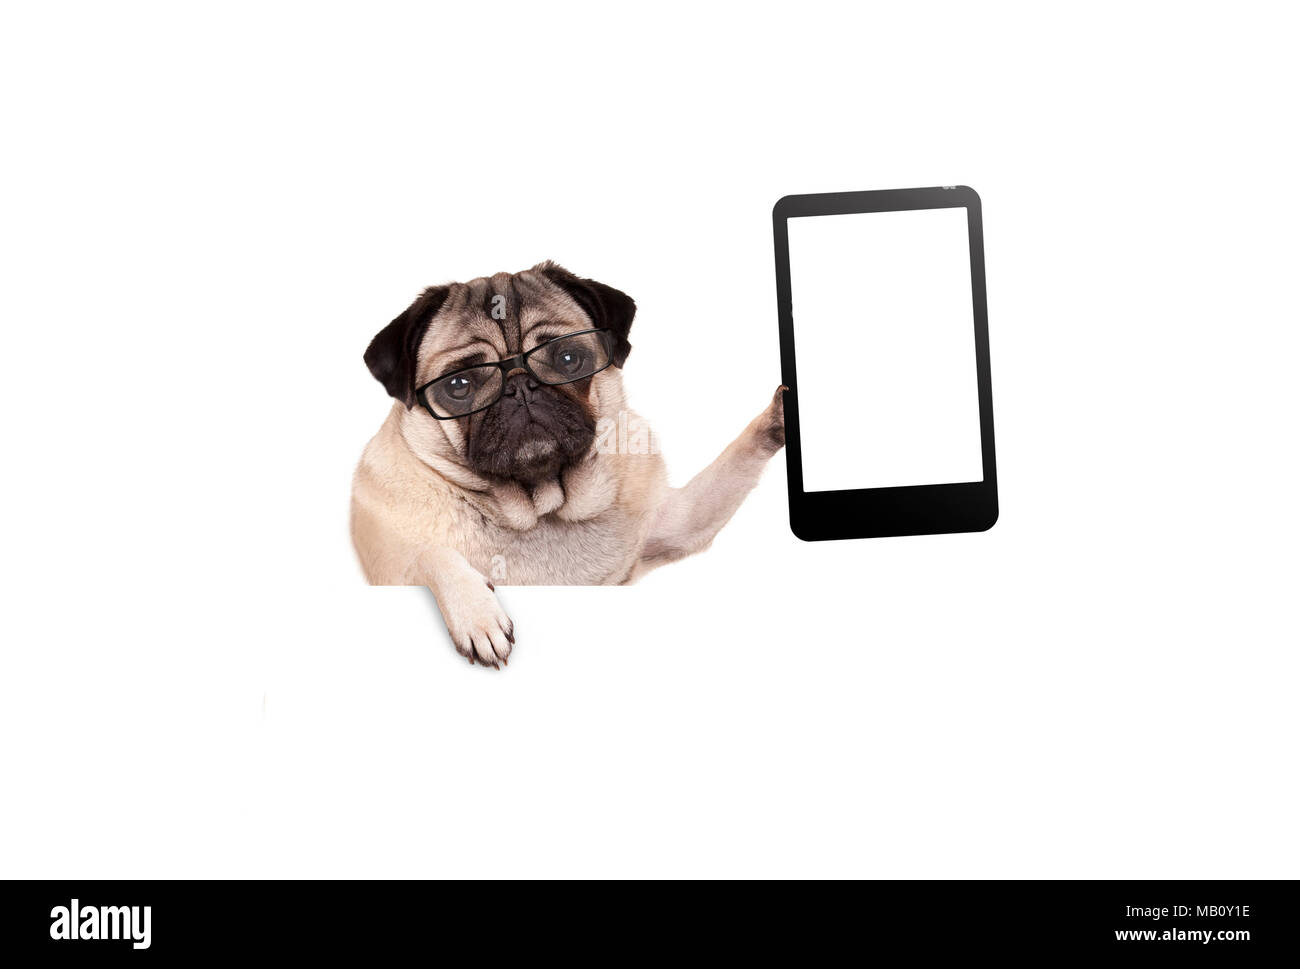 pug puppy dog with glasses holding up blank tablet or mobile phone, hanging on white banner, isolated Stock Photo